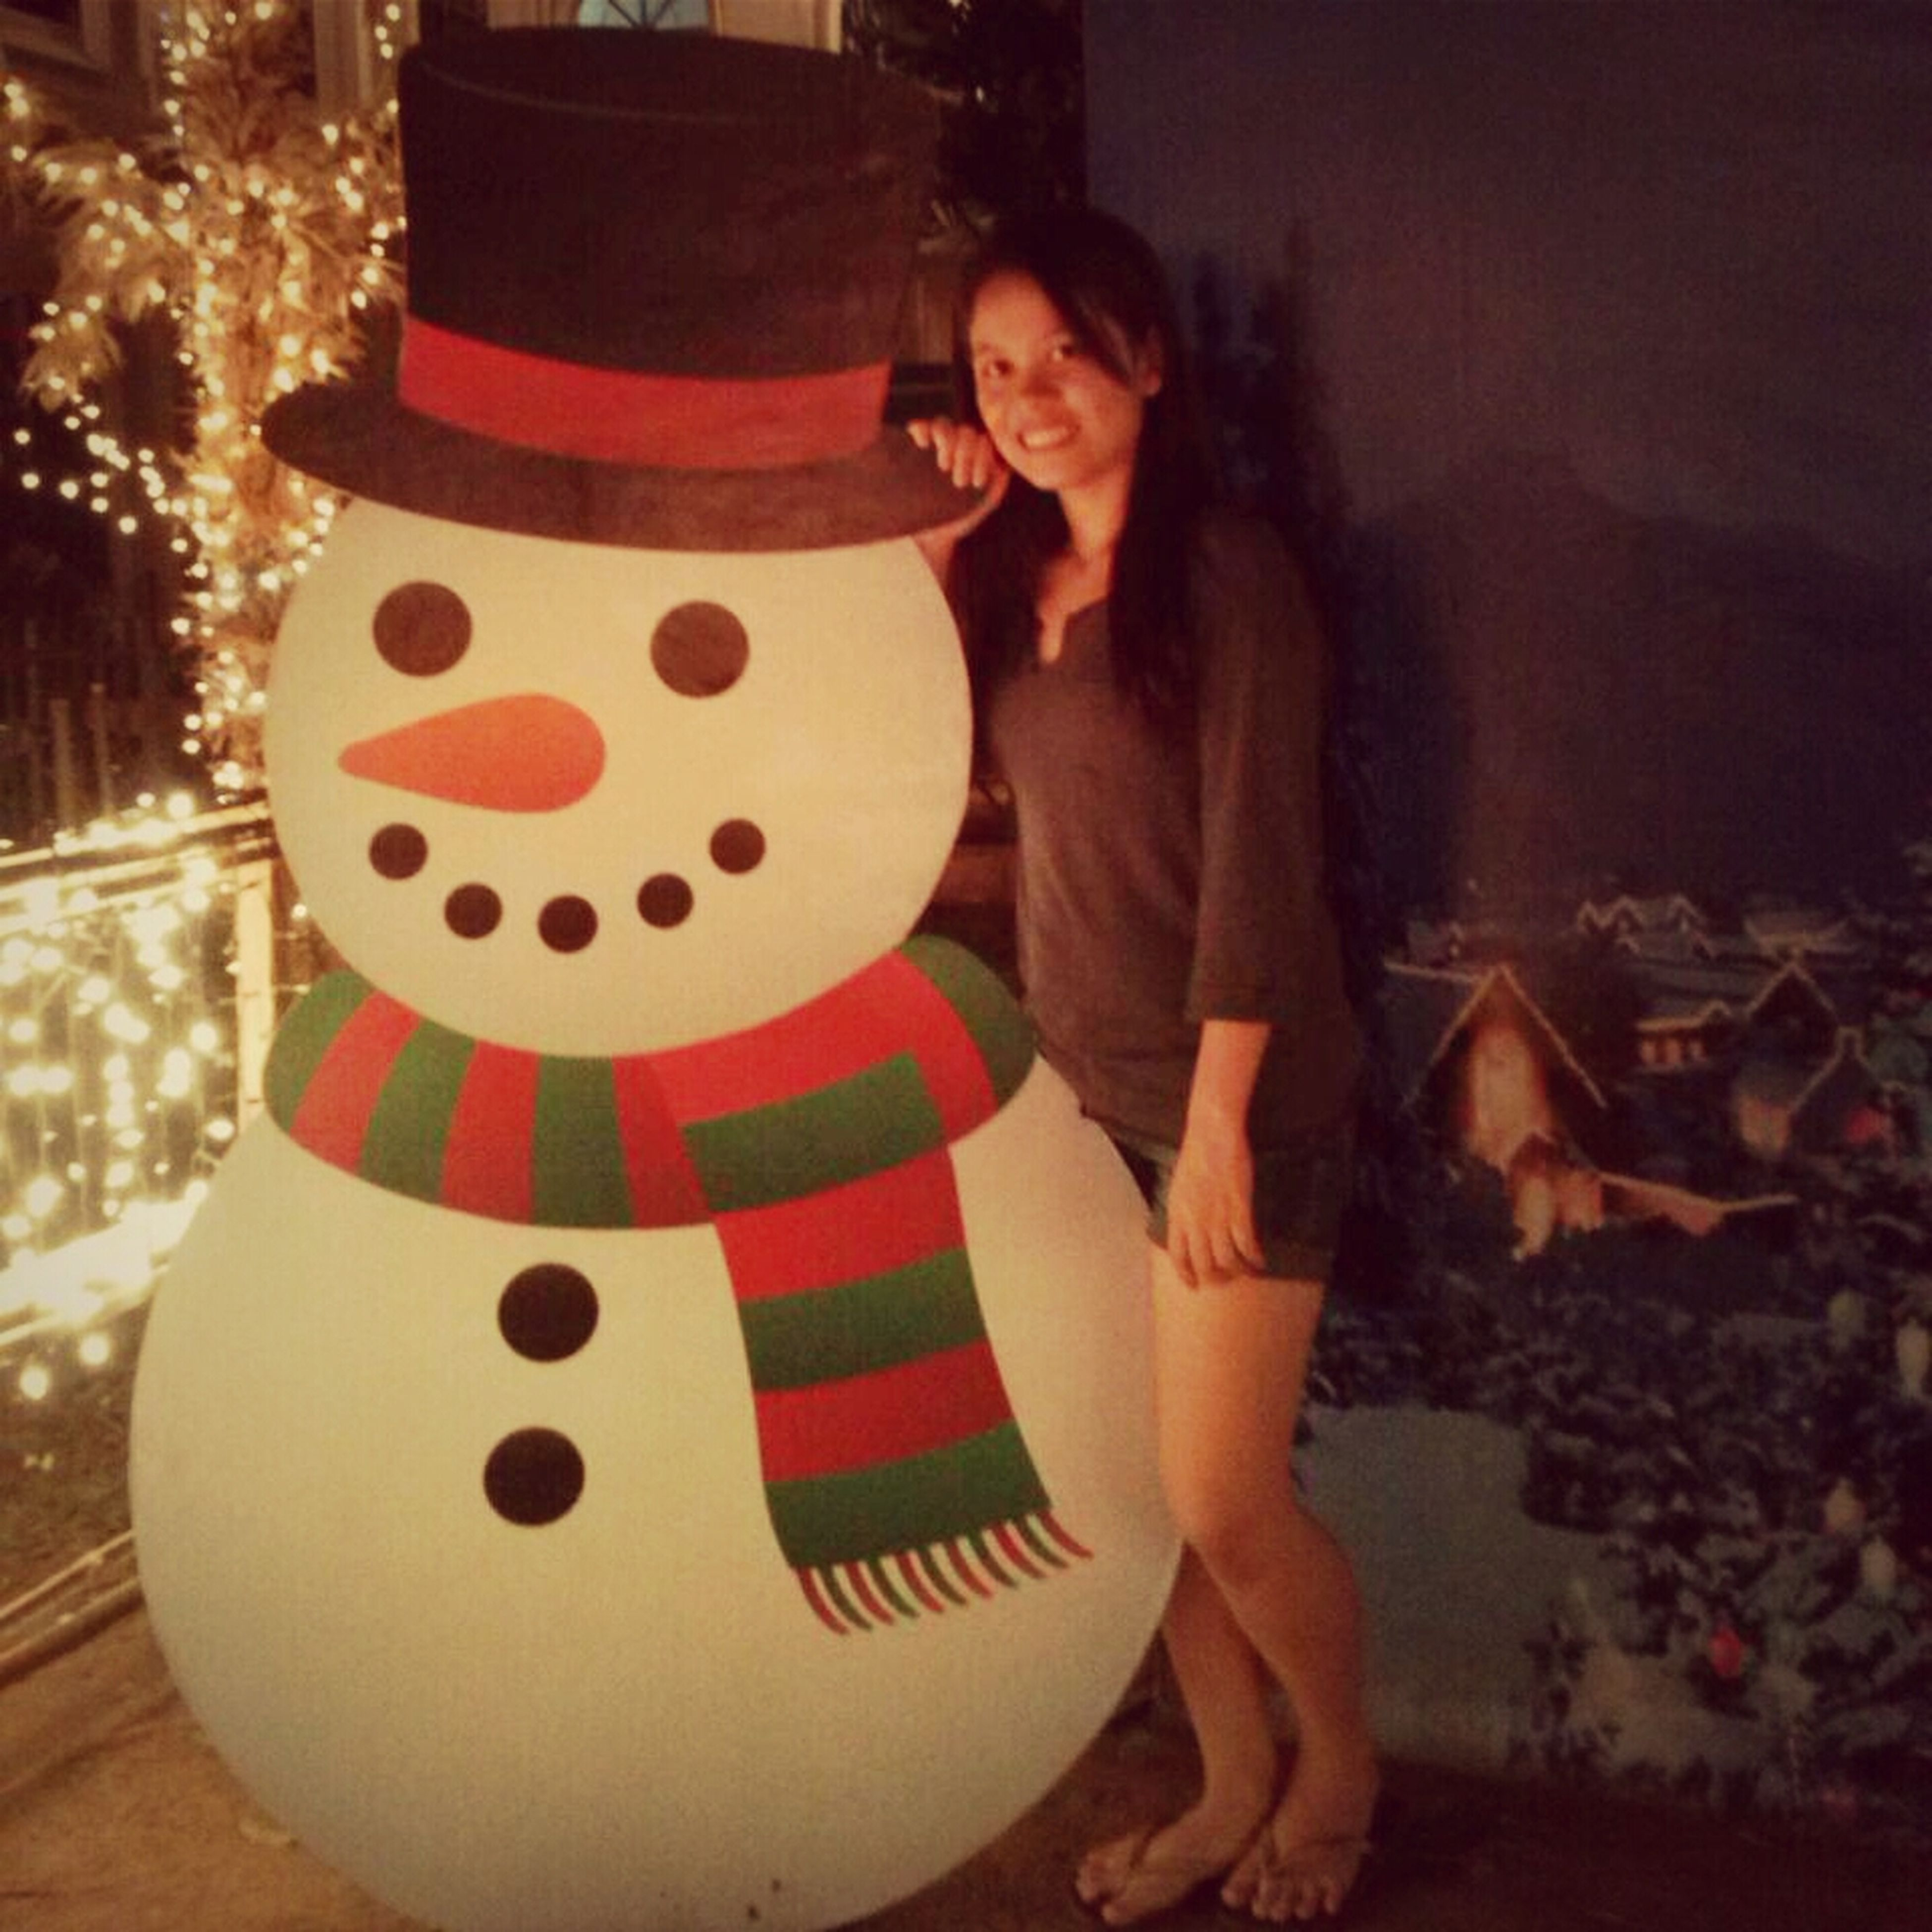 With Snowman